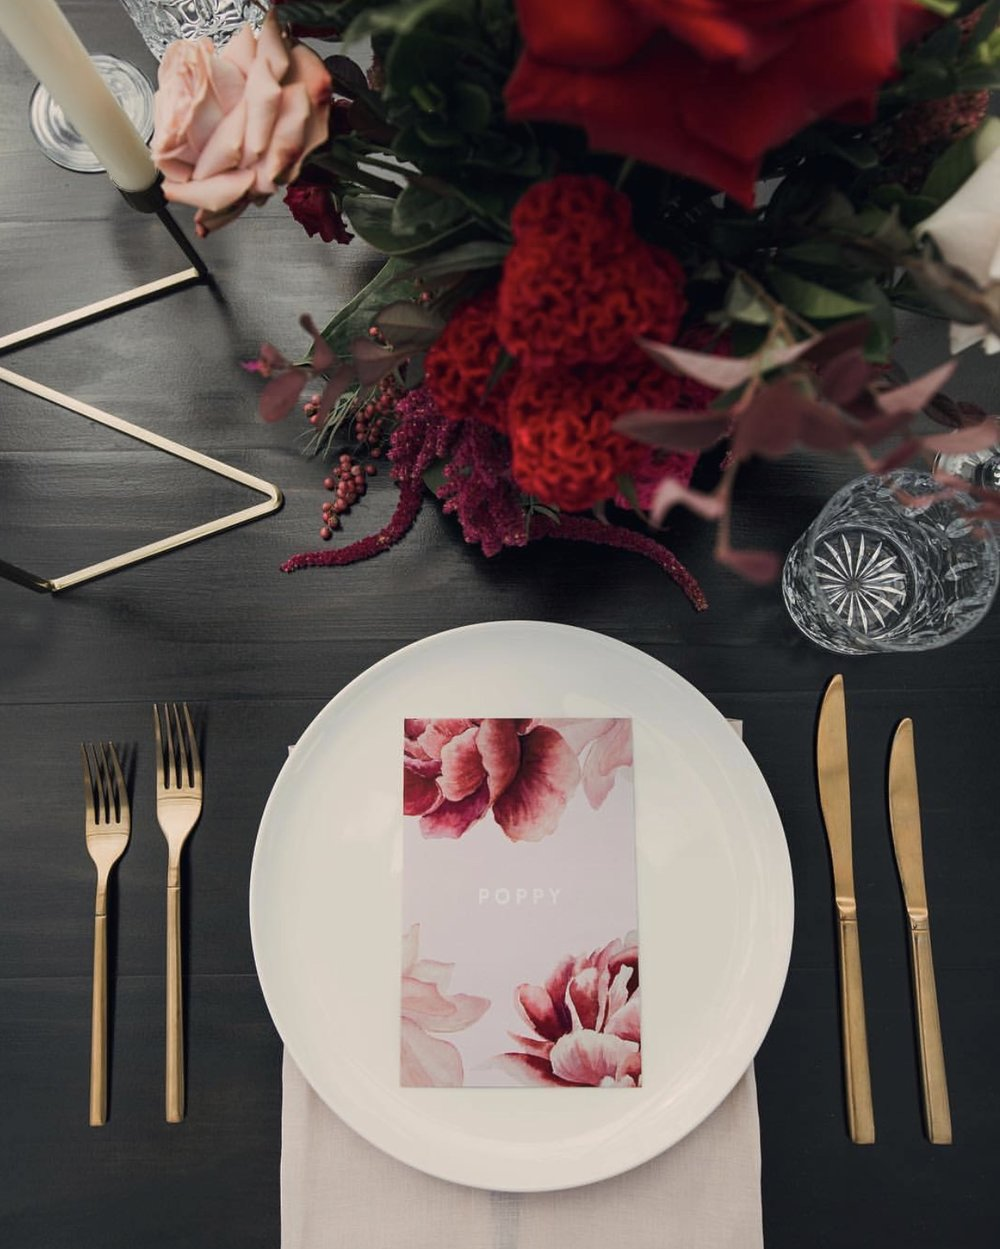 Noritake white raised rim dinner plates + Waterford crystal glassware - Photography by Tom Judson Photography